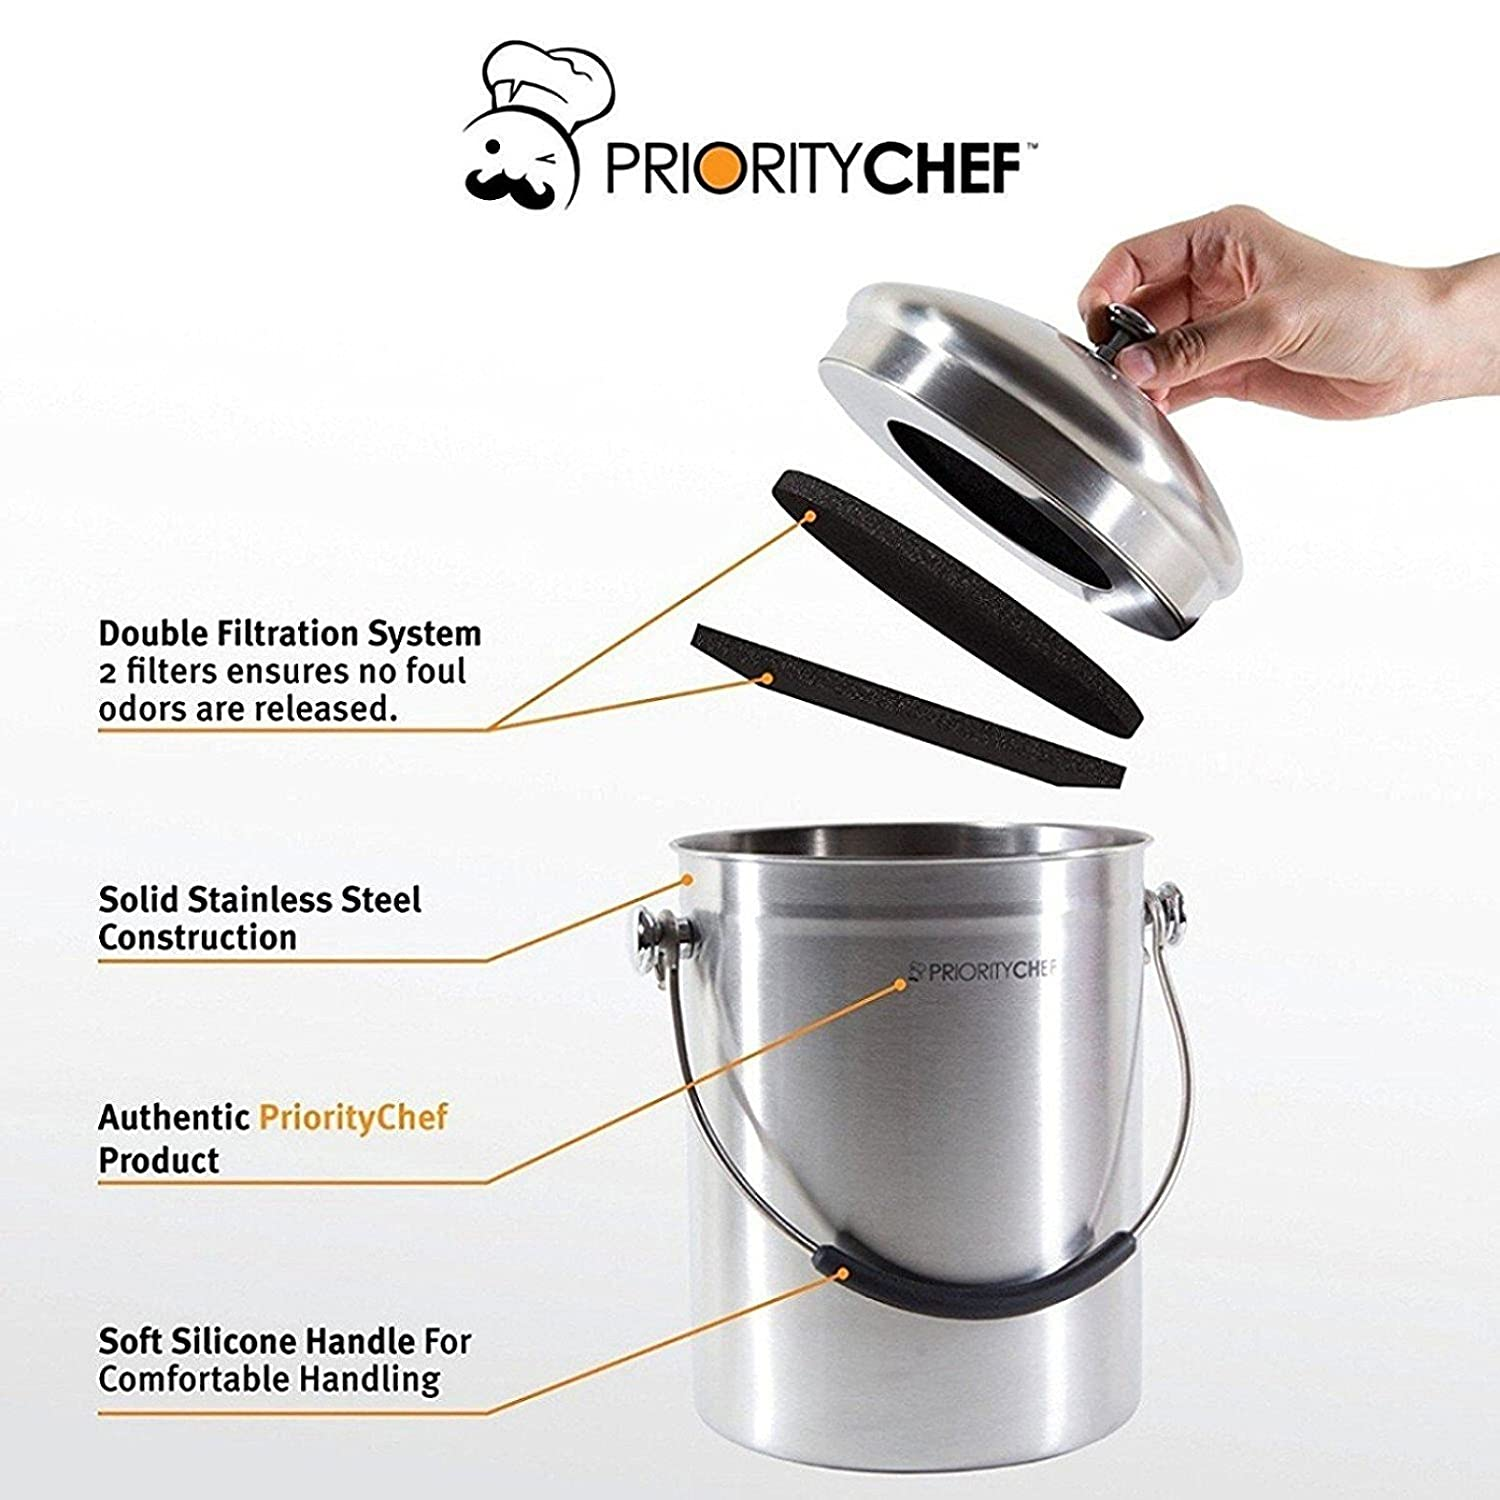 amazon com prioritychef compost bin stainless steel with soft